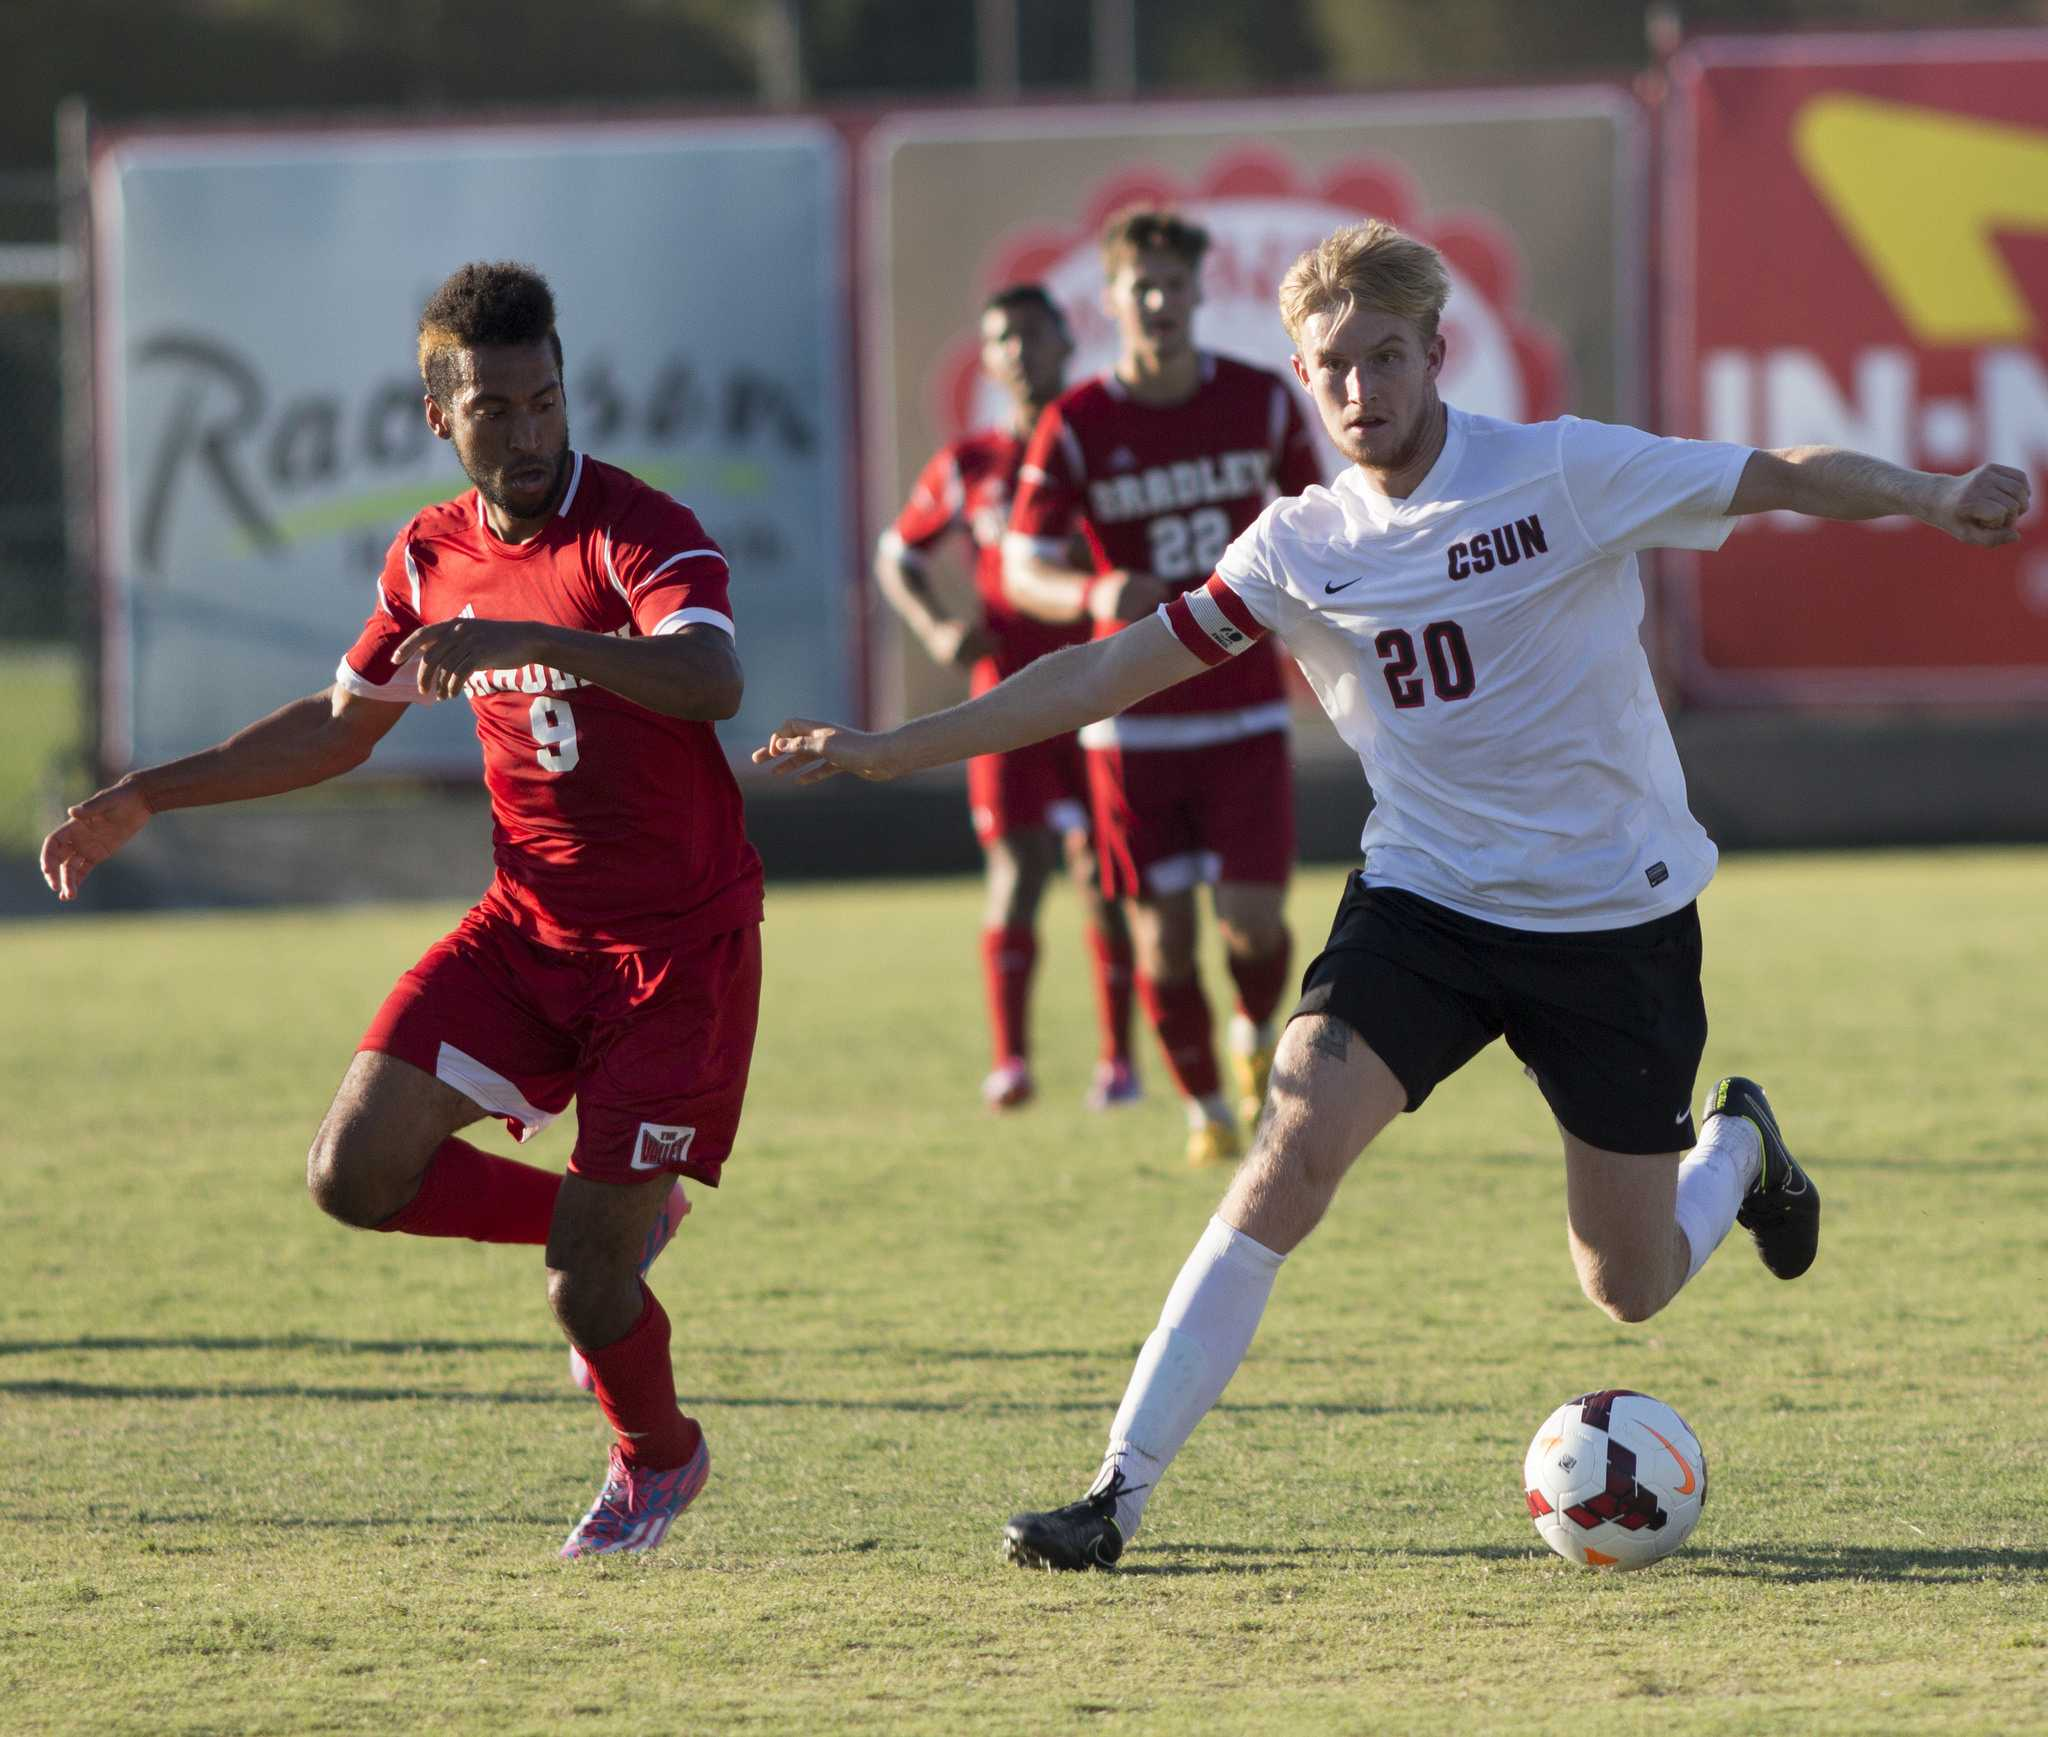 CSUN senior defender earns NSCAA honor